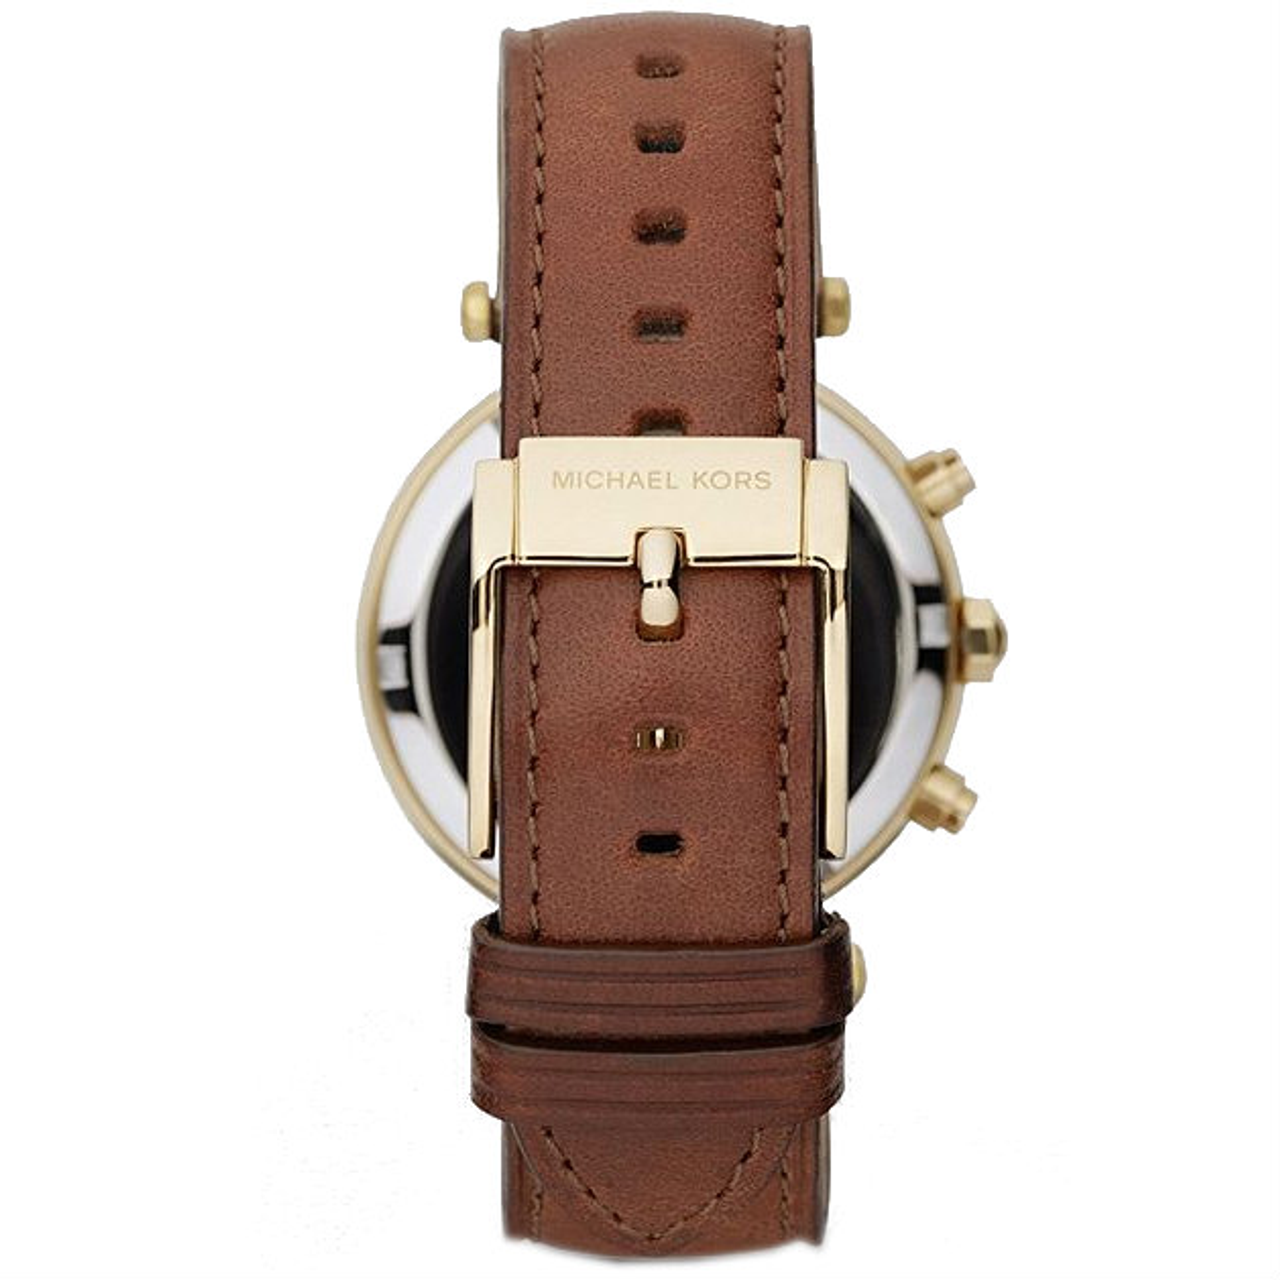 8f3e2c934 Michael Kors Replacement Watch Strap Brown Leather MK2249 With Free Pins